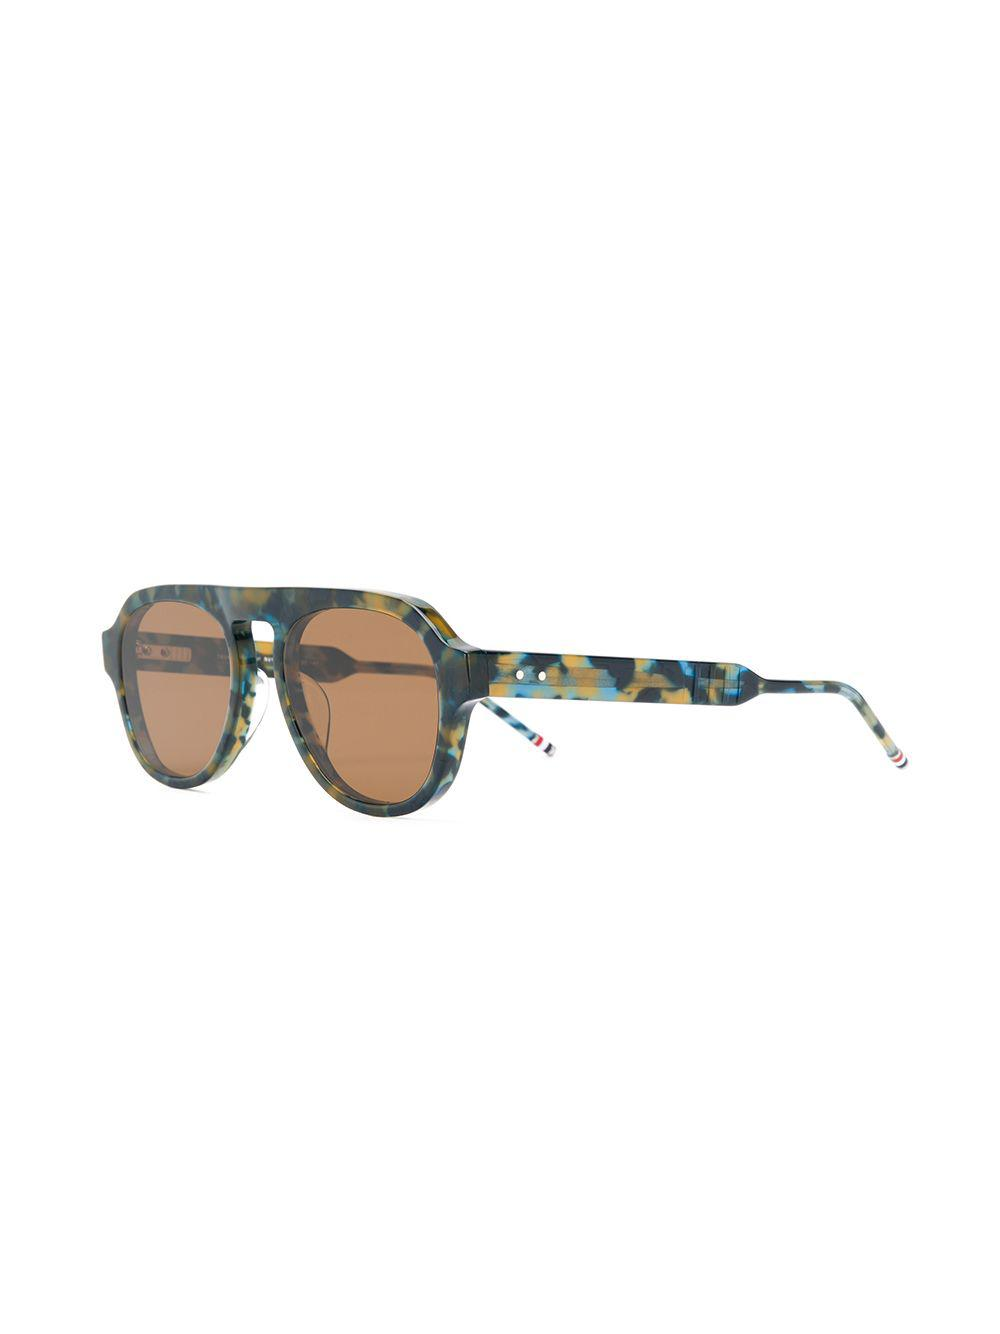 452f8c0f32 Lyst - Thom Browne Round-frame Glasses in Blue for Men